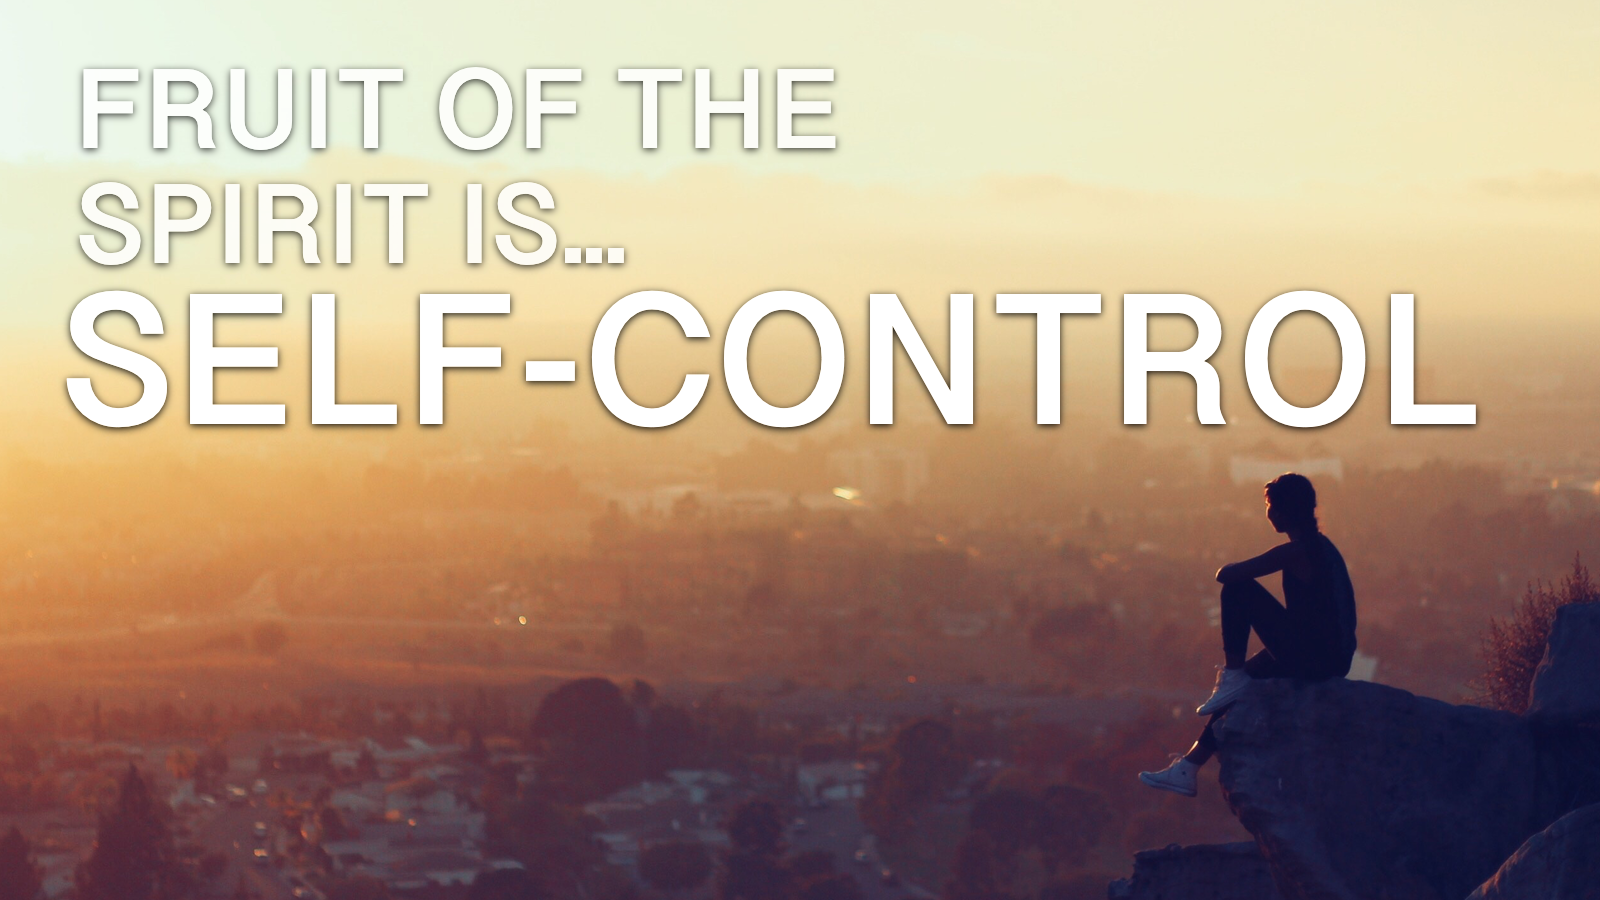 2019-03-11-The-Fruit-Of-The-Spirit-Is-Self-Control.png